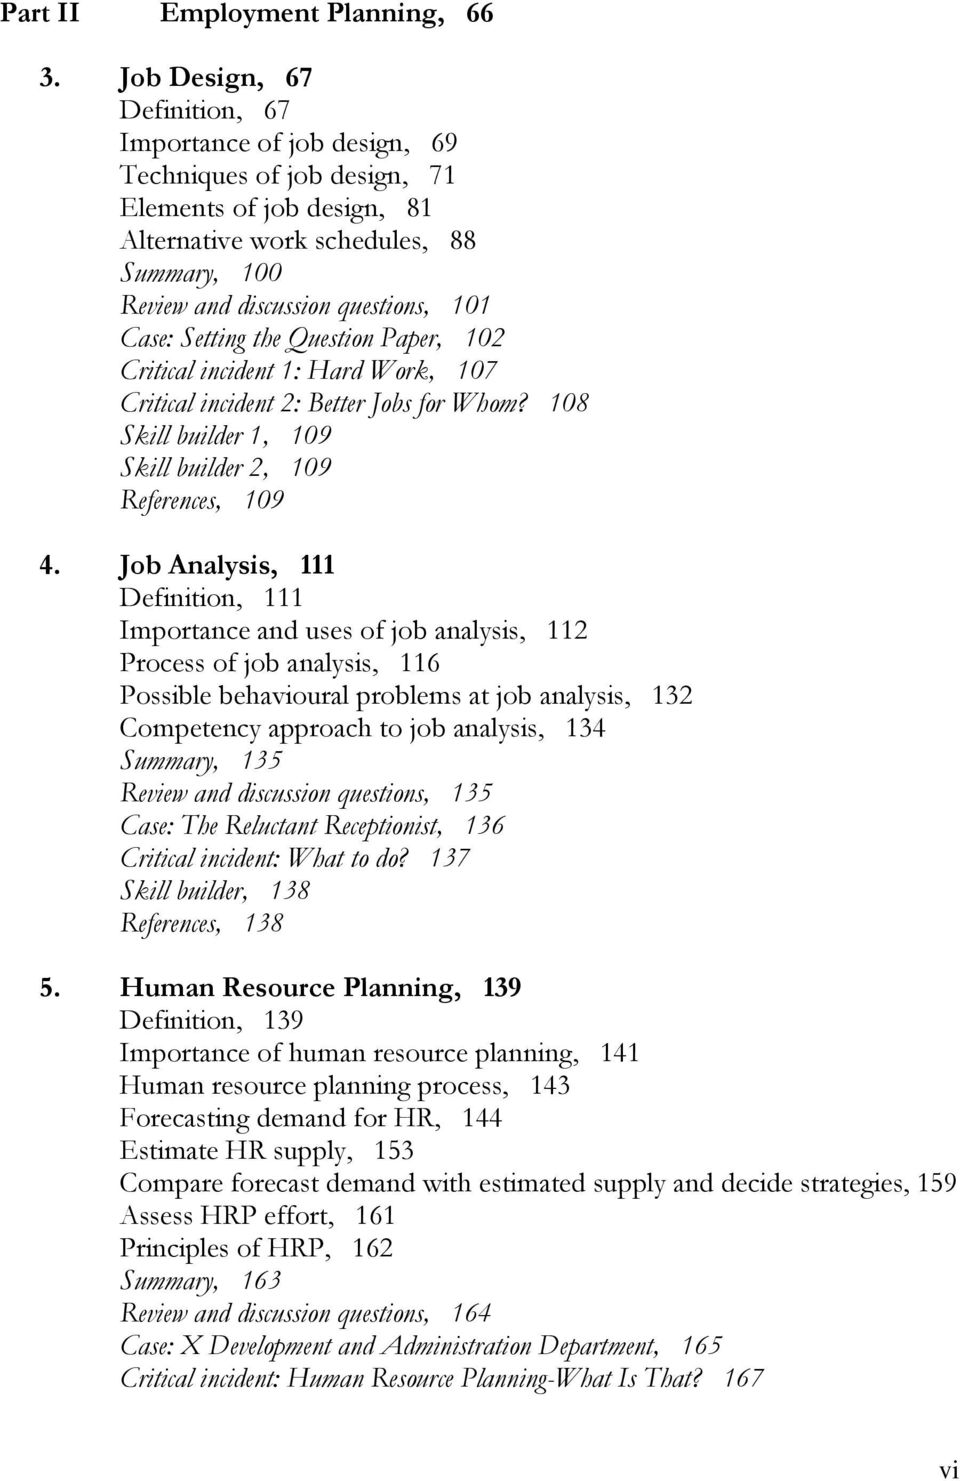 problems of human resource planning